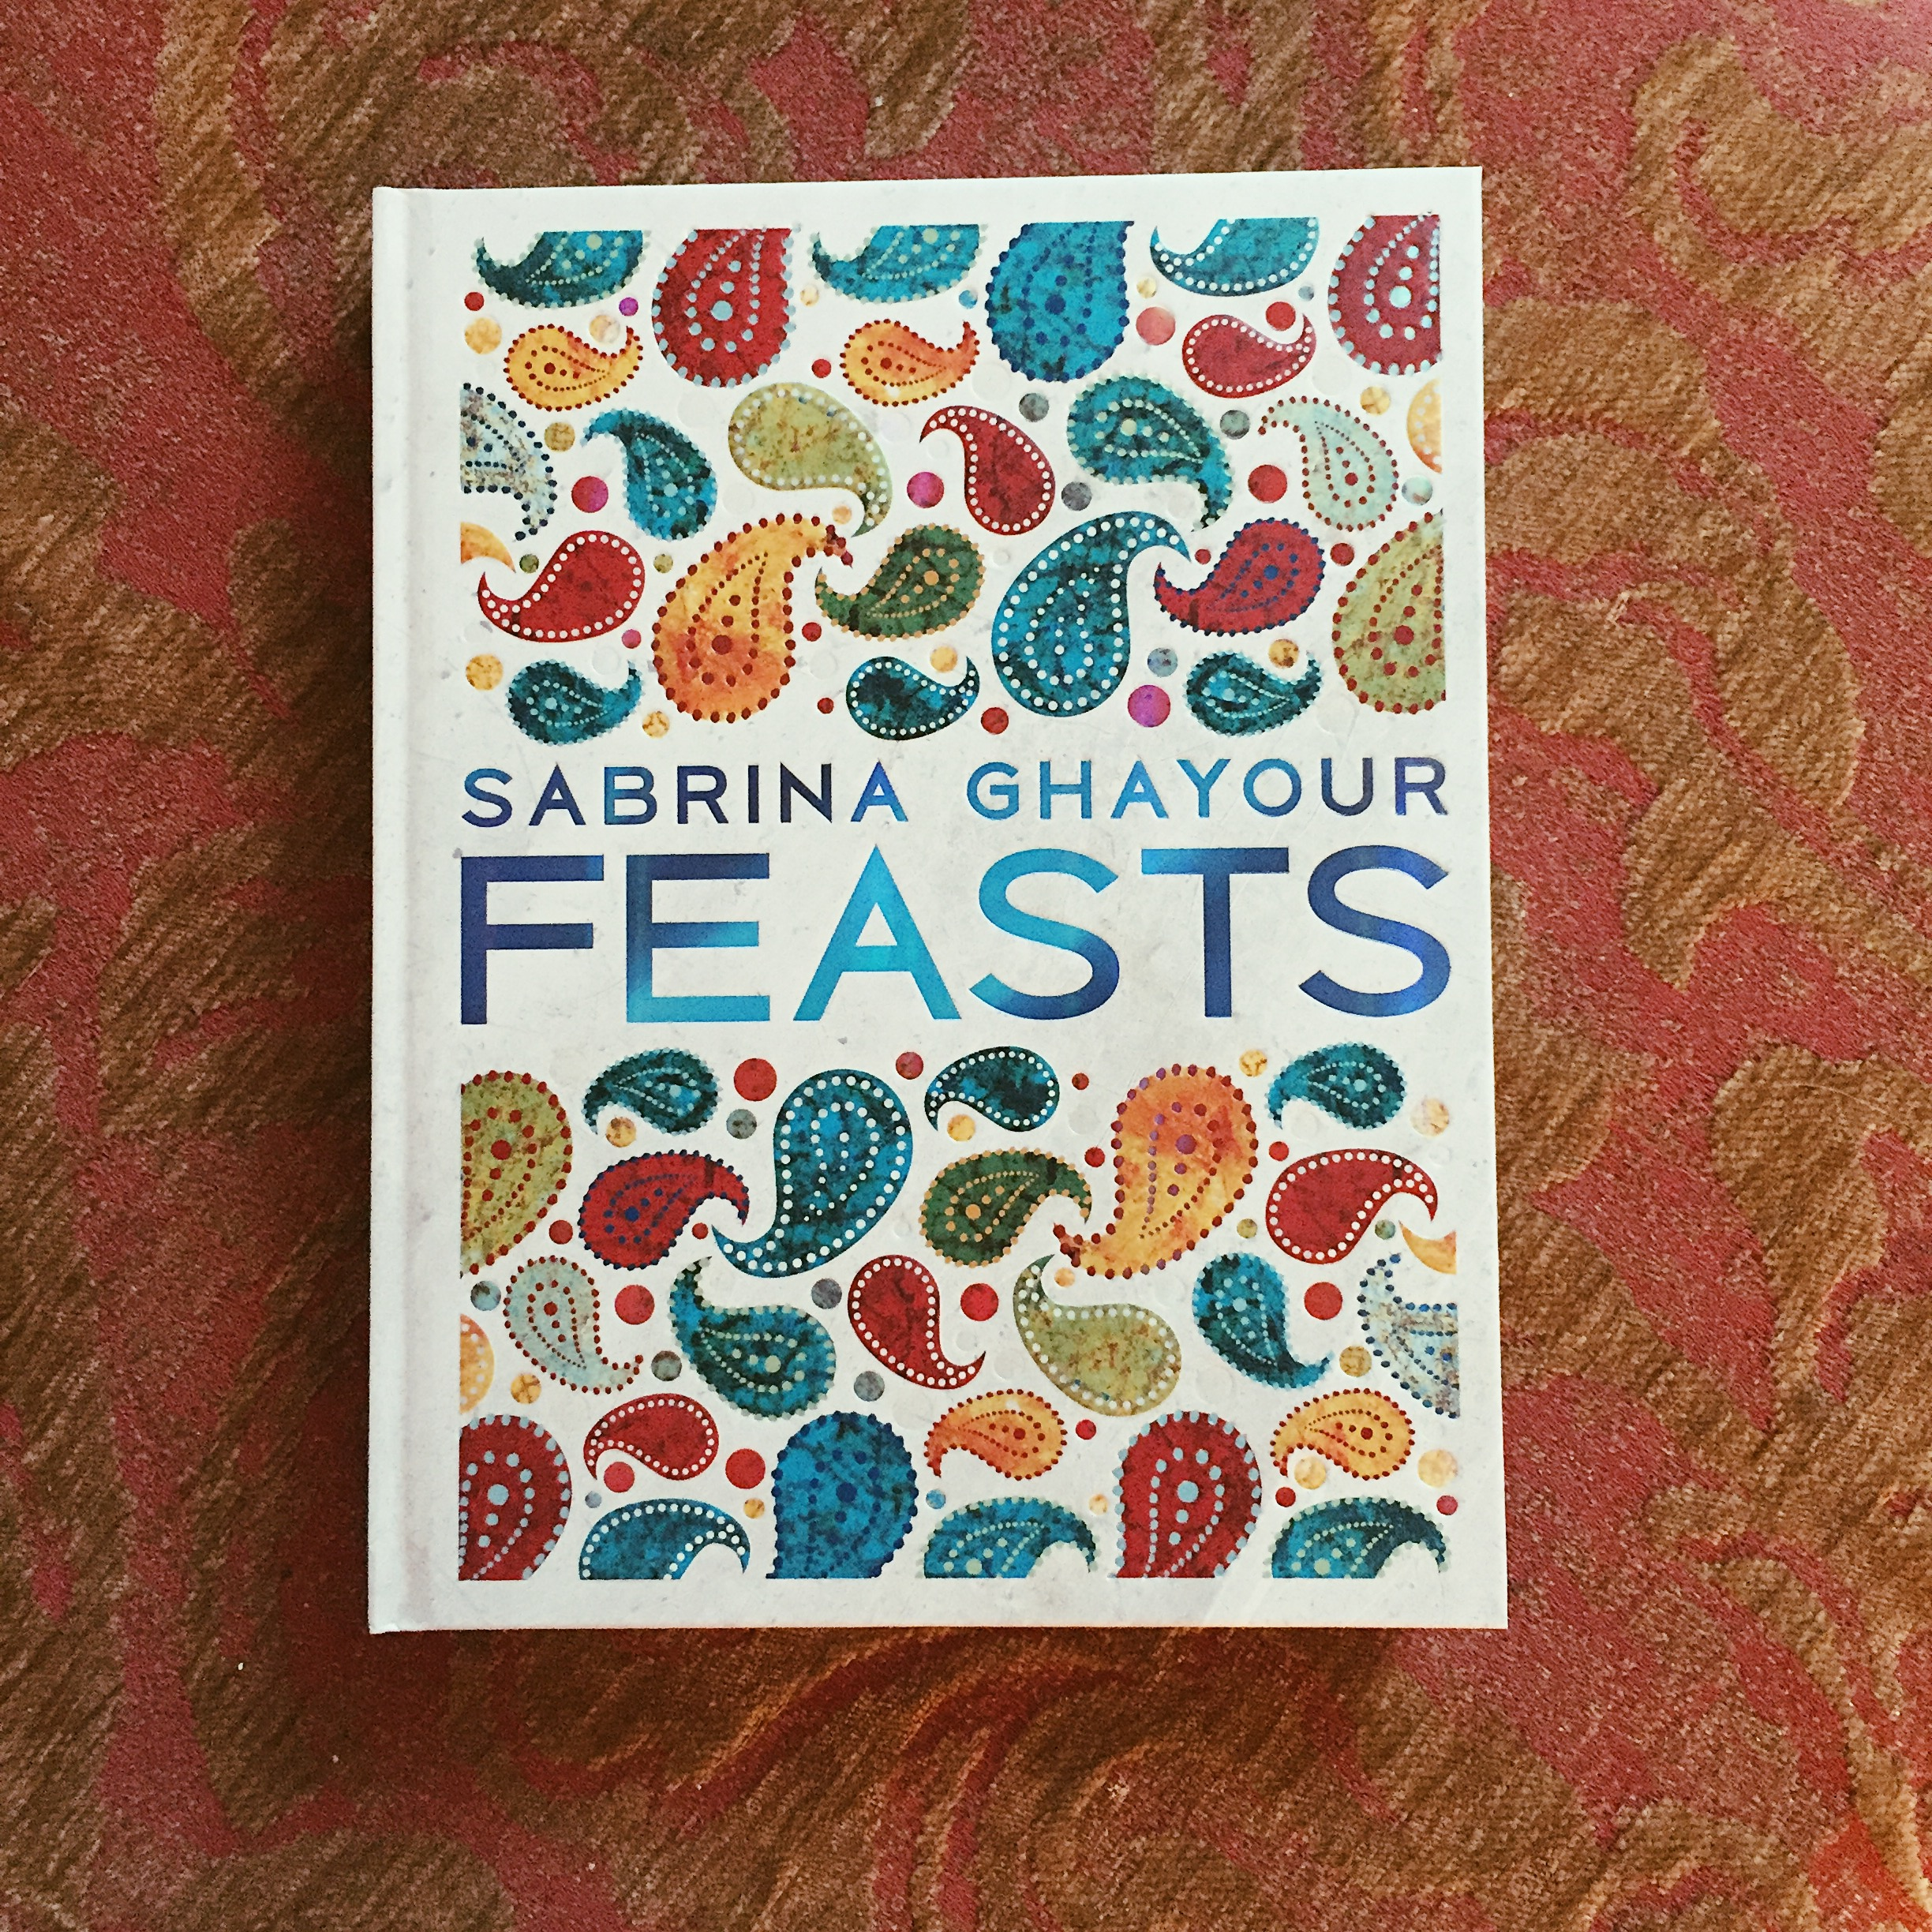 Feasts review Sabrina Ghayour